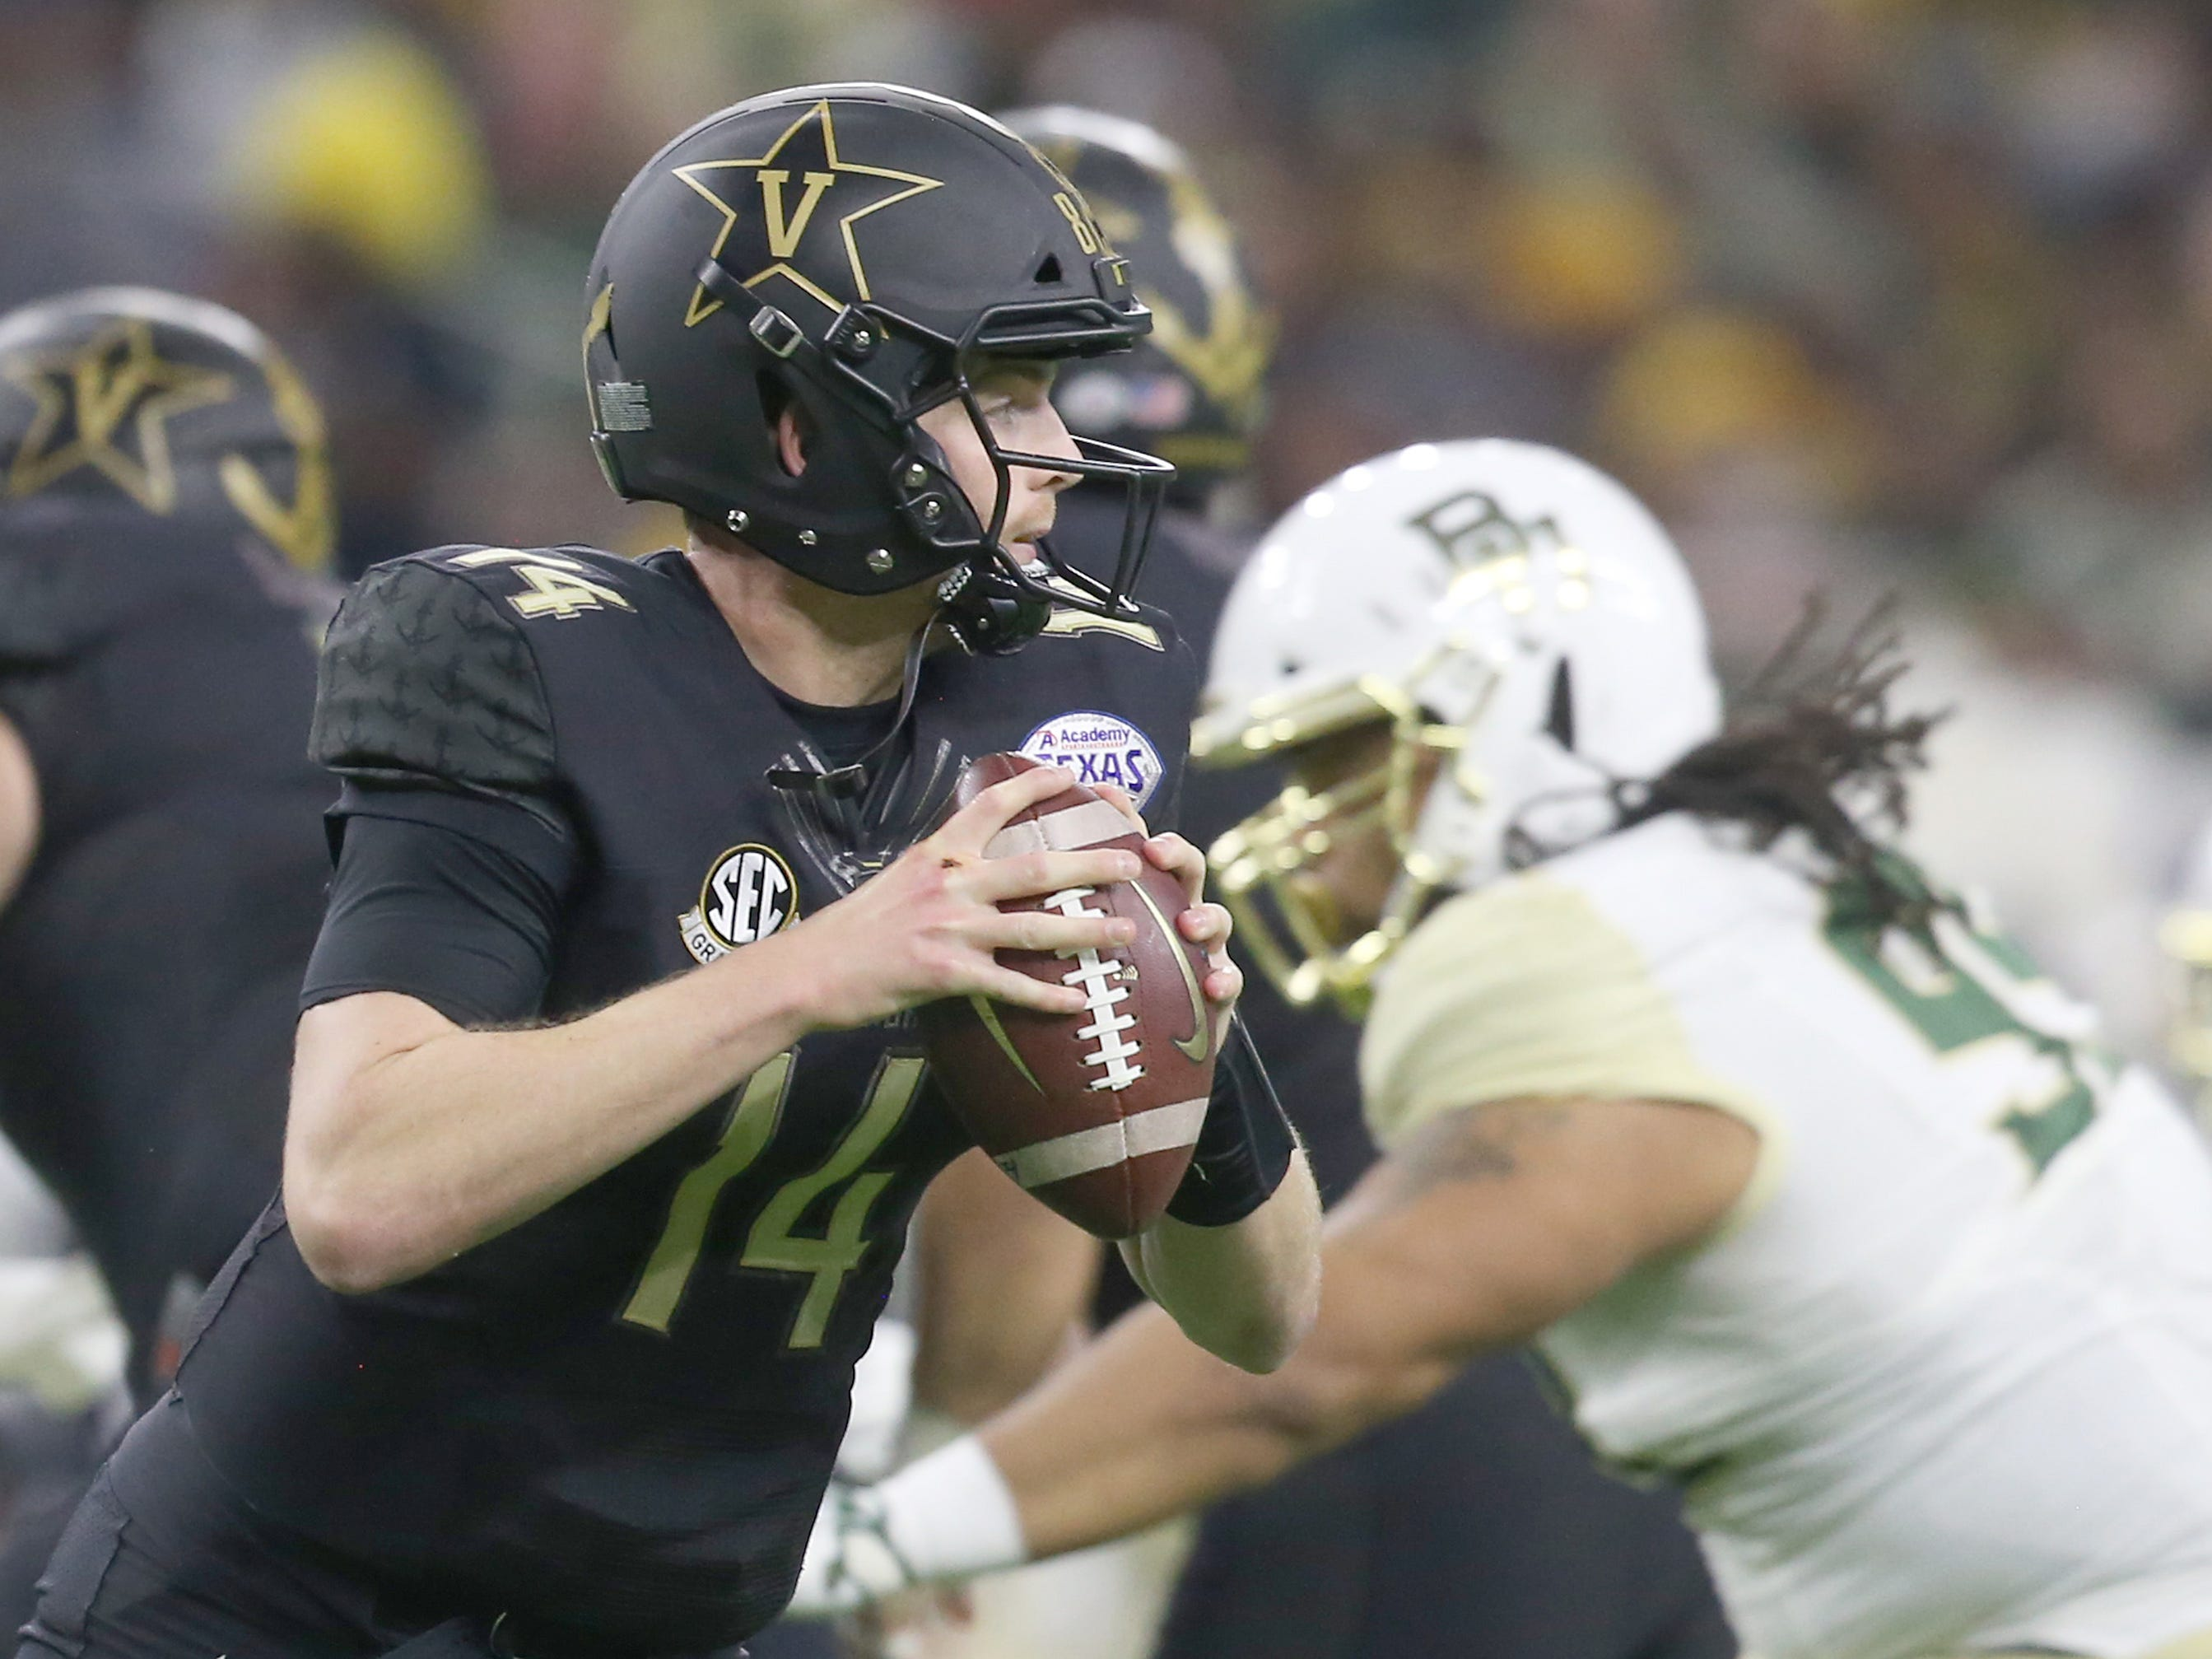 Vanderbilt  quarterback Kyle Shurmur looks to pass  against Baylor in the Texas Bowl.